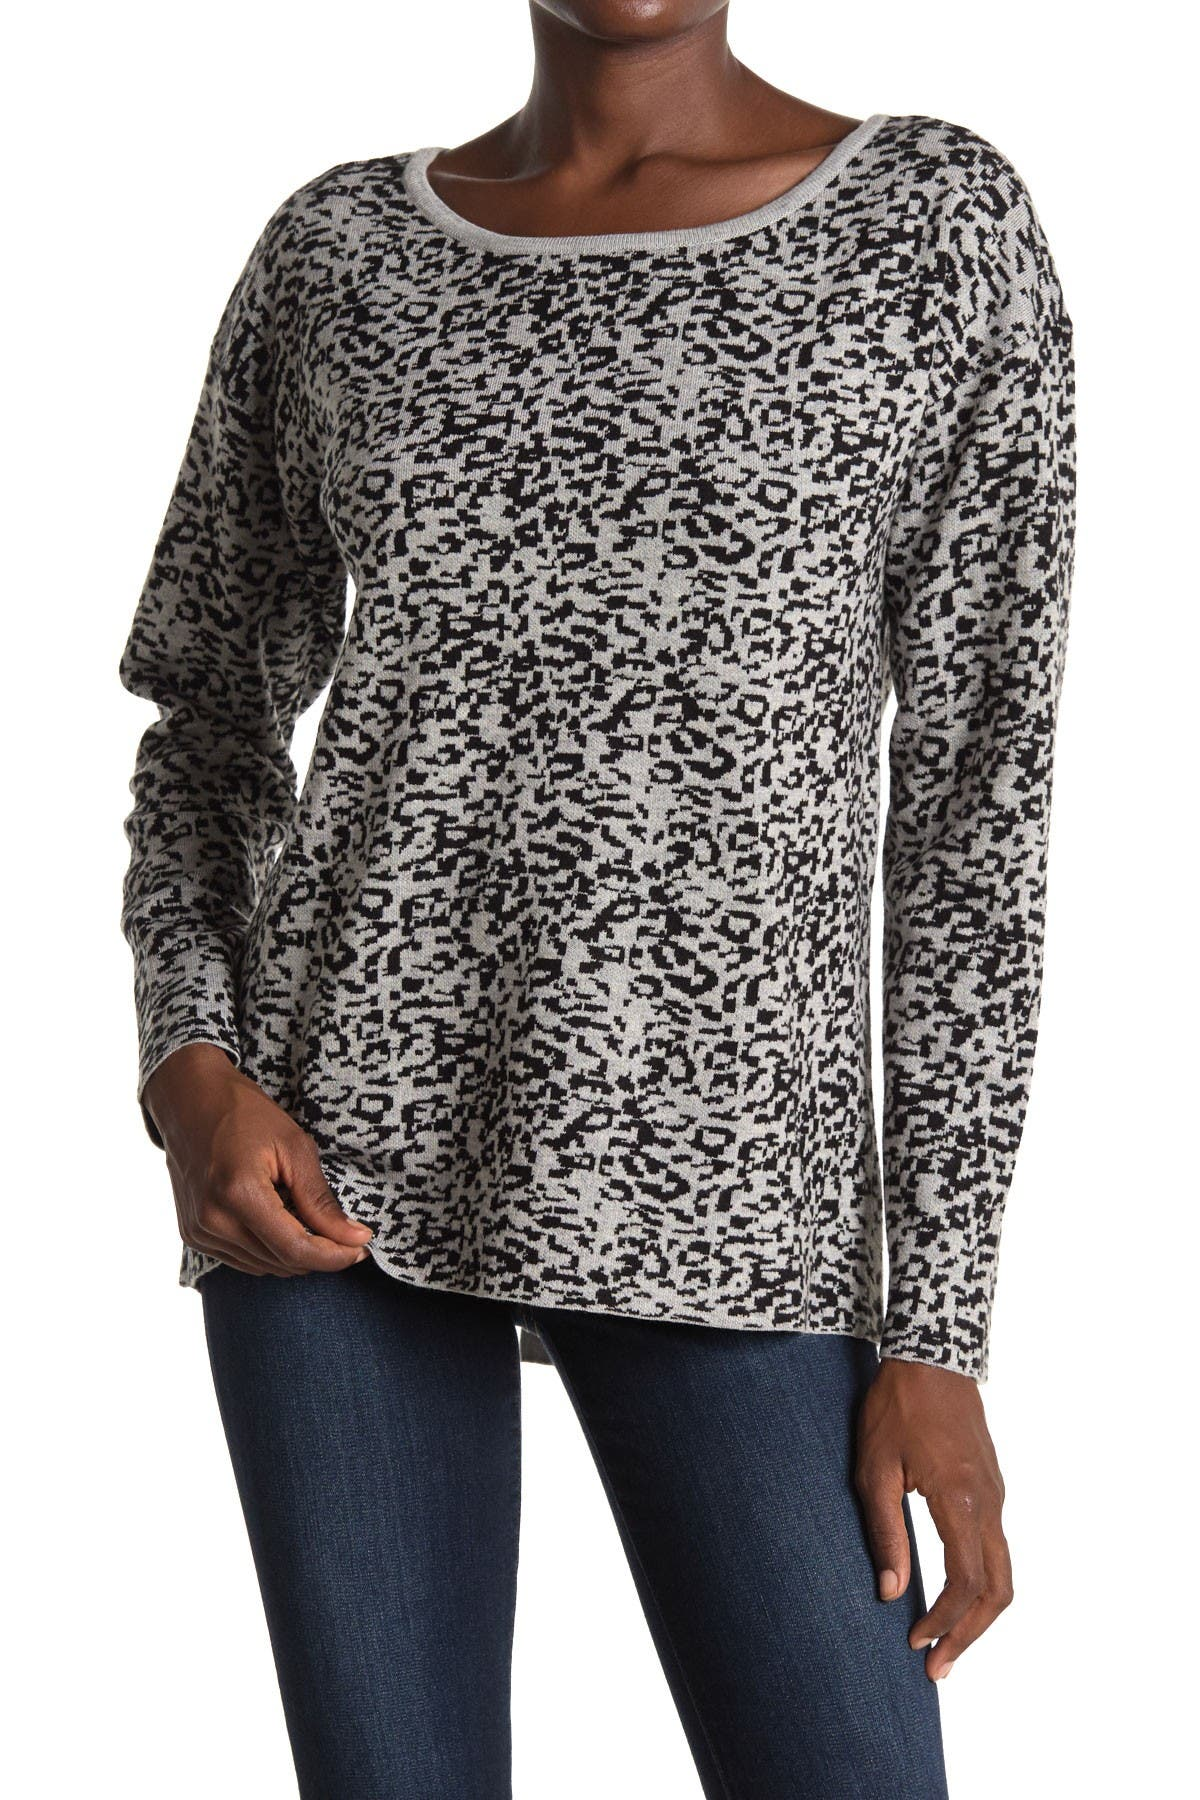 Image of NYDJ Leopard Print Button Back Sweater